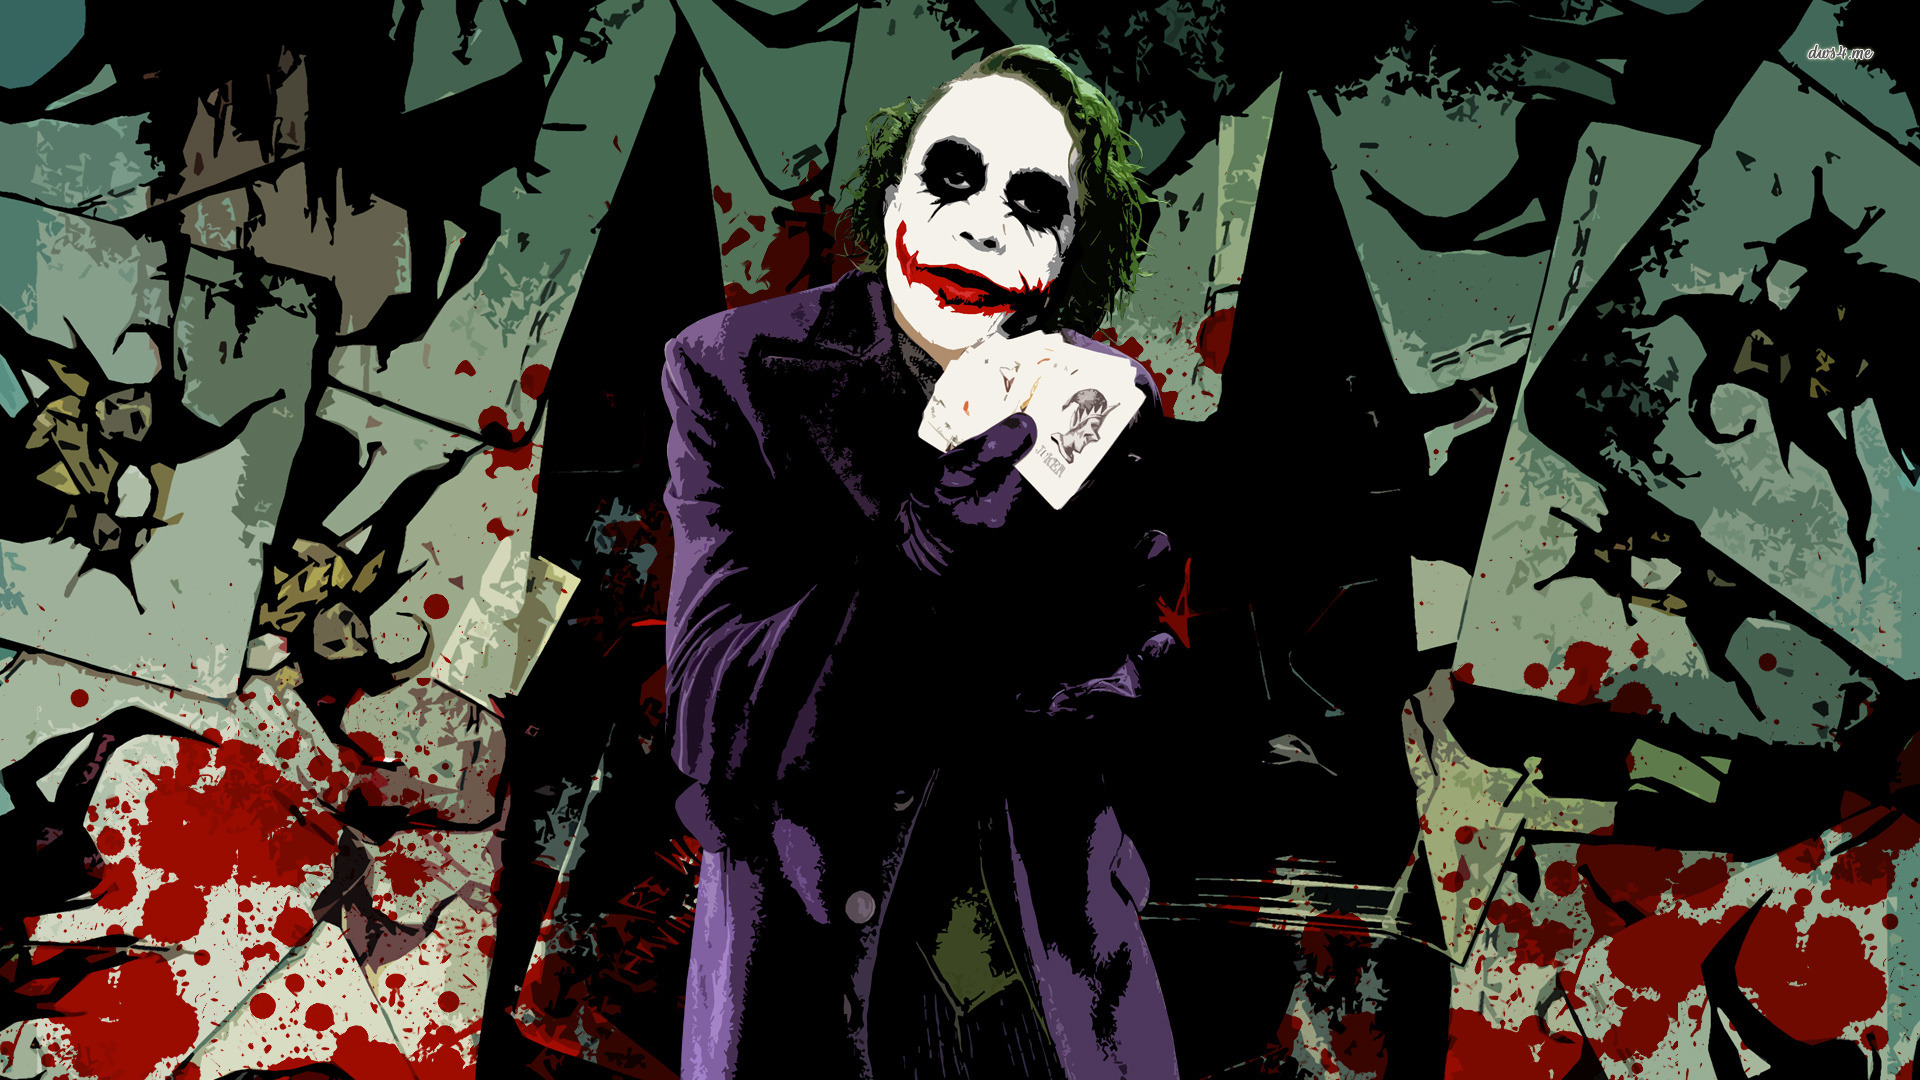 1080P HD Joker Wallpaper Wallpaper